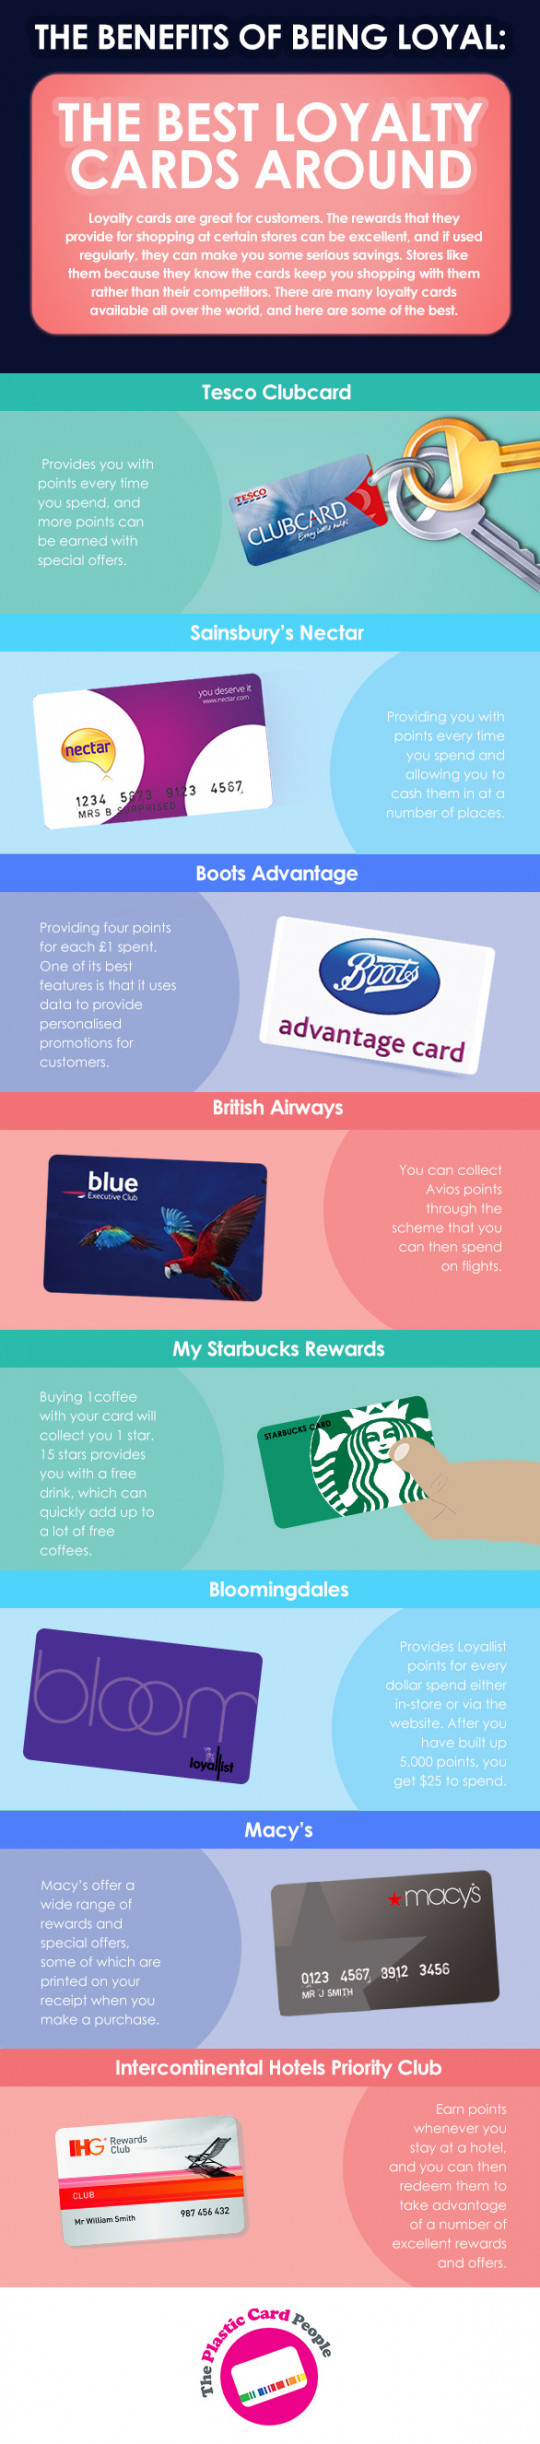 The Best Loyalty Cards Around